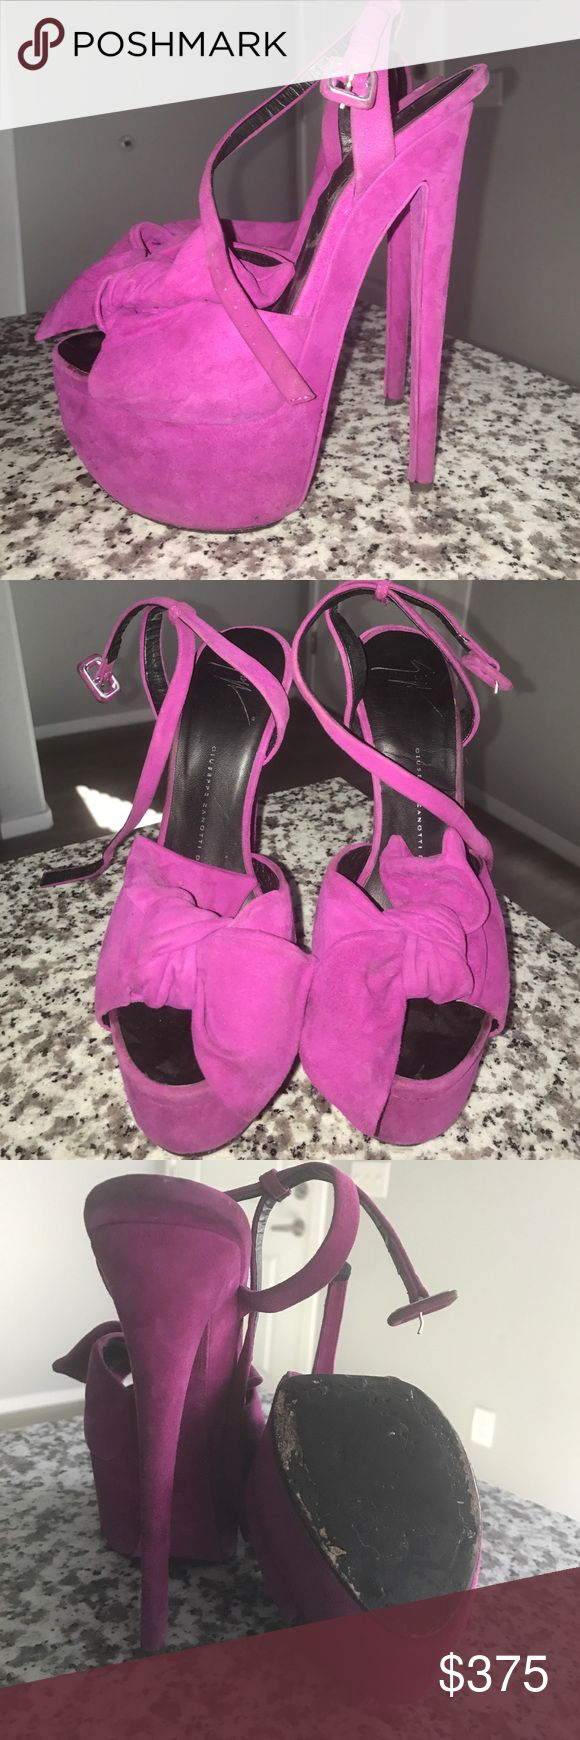 "Giuseppe Zanotti heels Up for sale, my pre-loved (worn), Giuseppe Zanotti ""Denny"" fuchsia platform heels. Worn a couple of times with light wear & tear.  6"" heel, 2"" platform. Size 38.5 but since these run small, they are perfect for a size 7. No dust bag or box, purchased from Nordstrom. Giuseppe Zanotti Shoes Platforms"